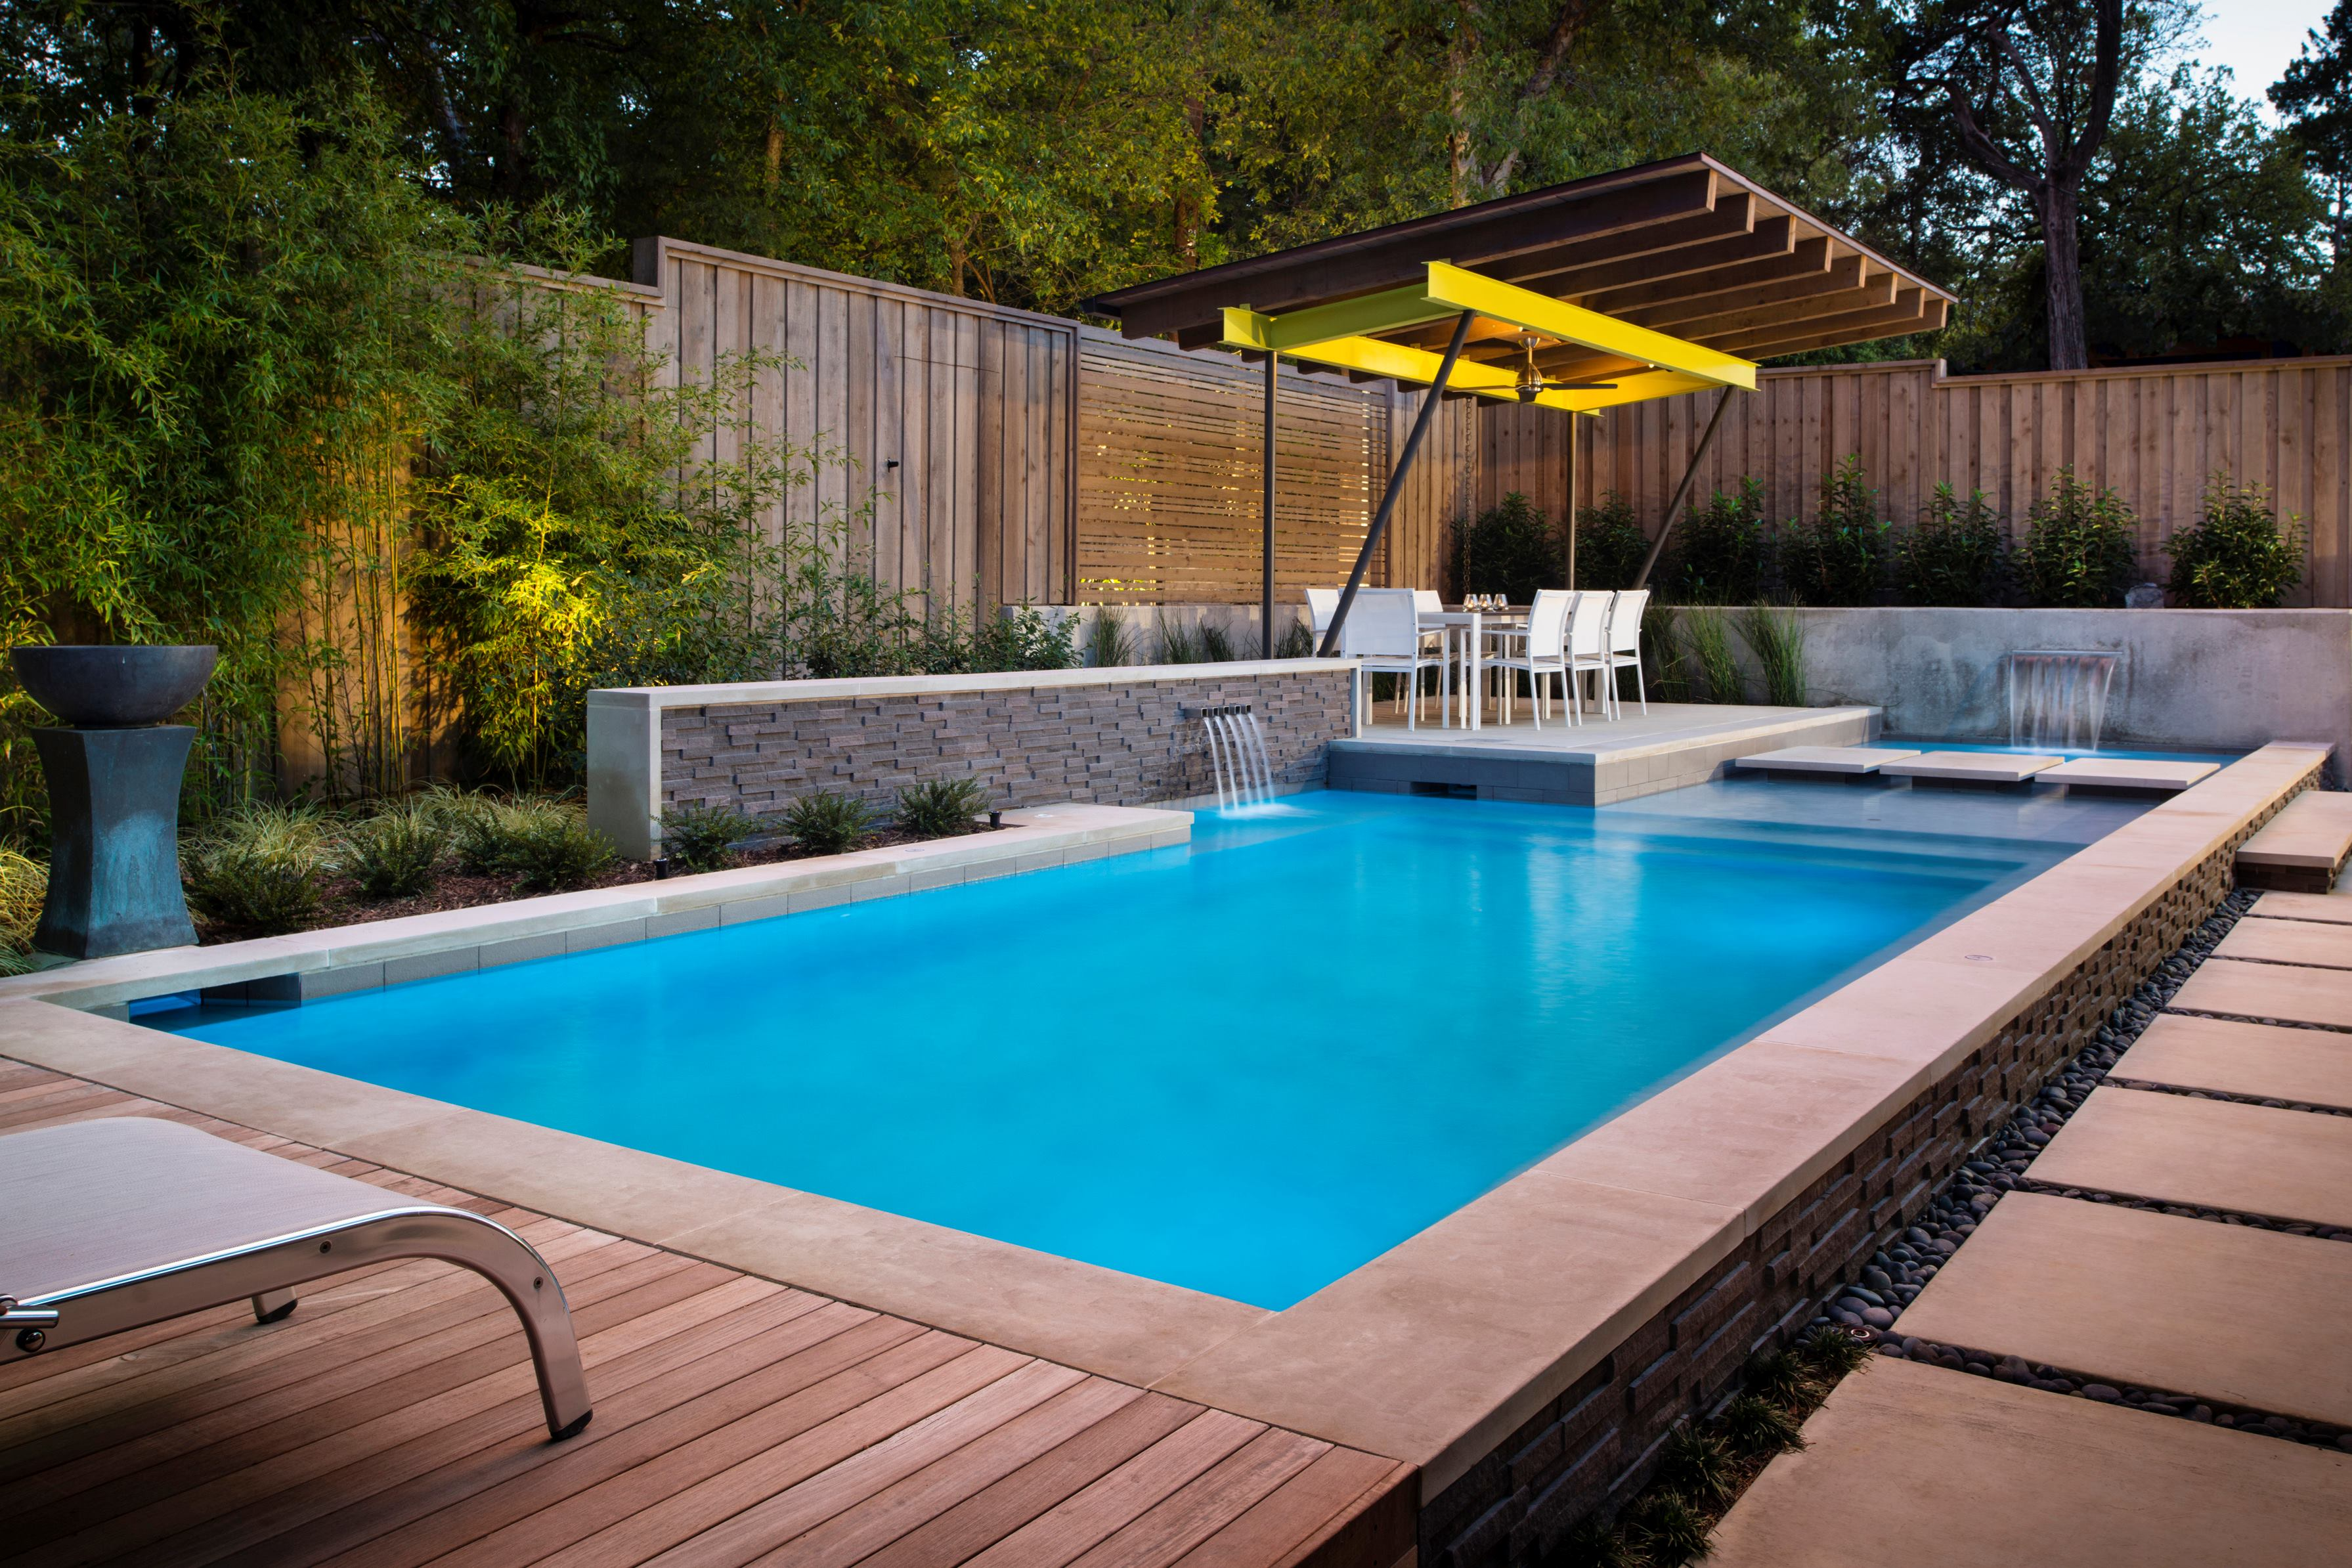 Line and texture remodeling pools landscaping for Pool design inspiration